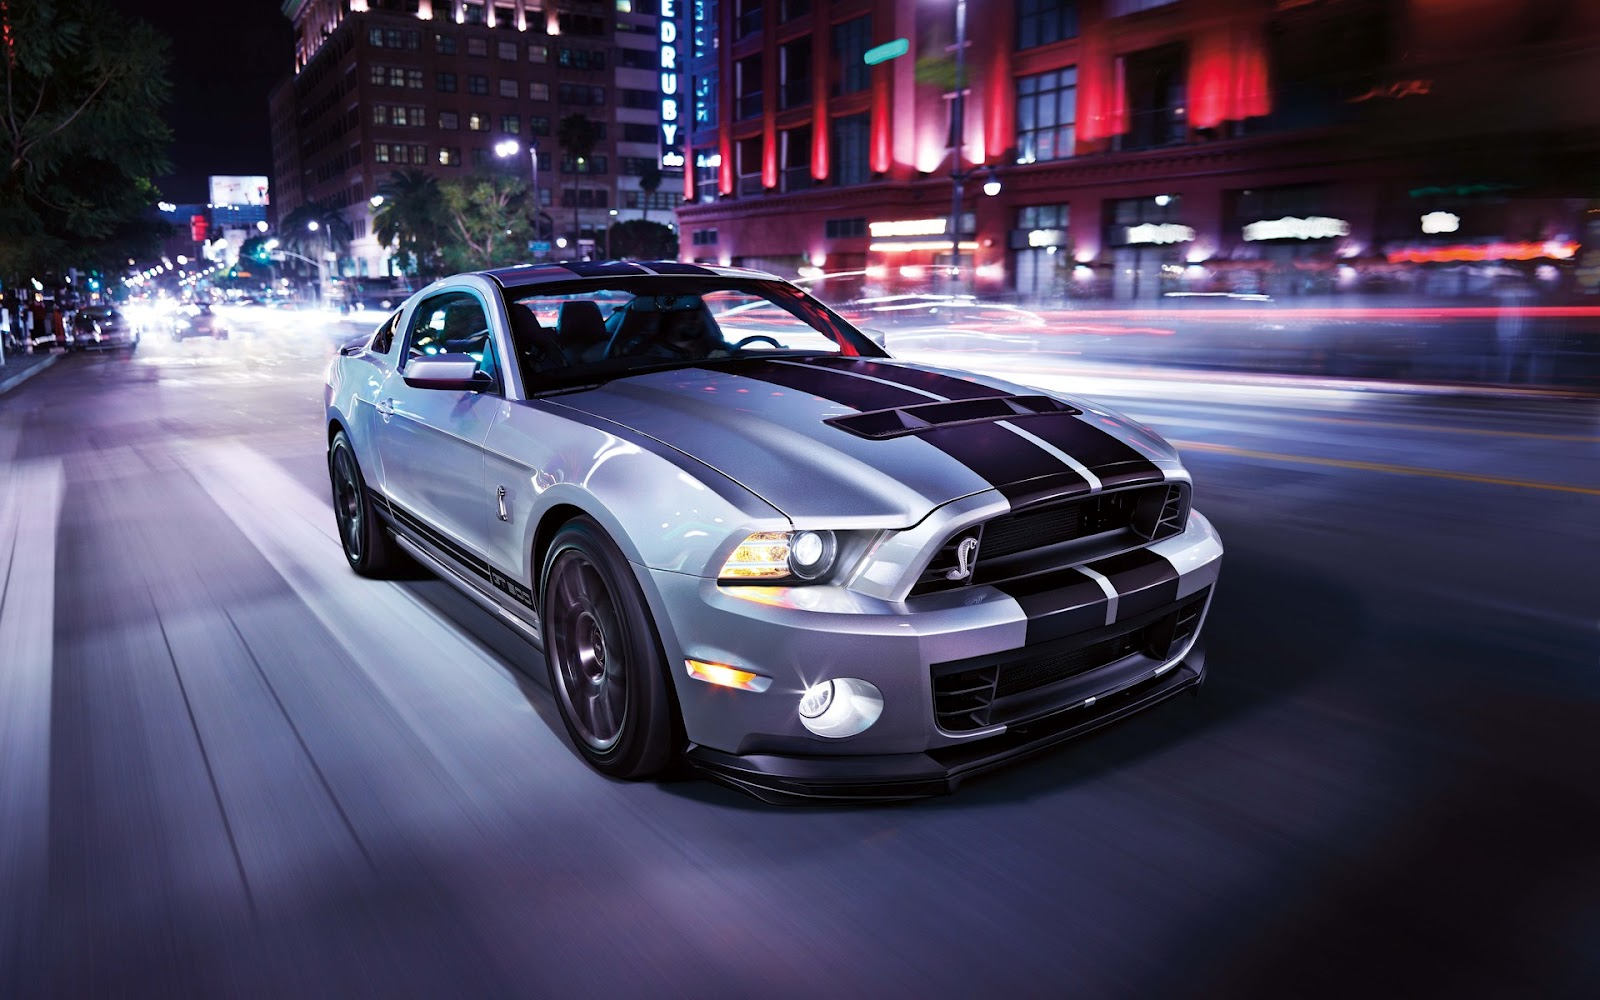 Ford Mustang GT500 Shelby   Fondos de Pantalla HD   Wallpapers HD 1600x1000